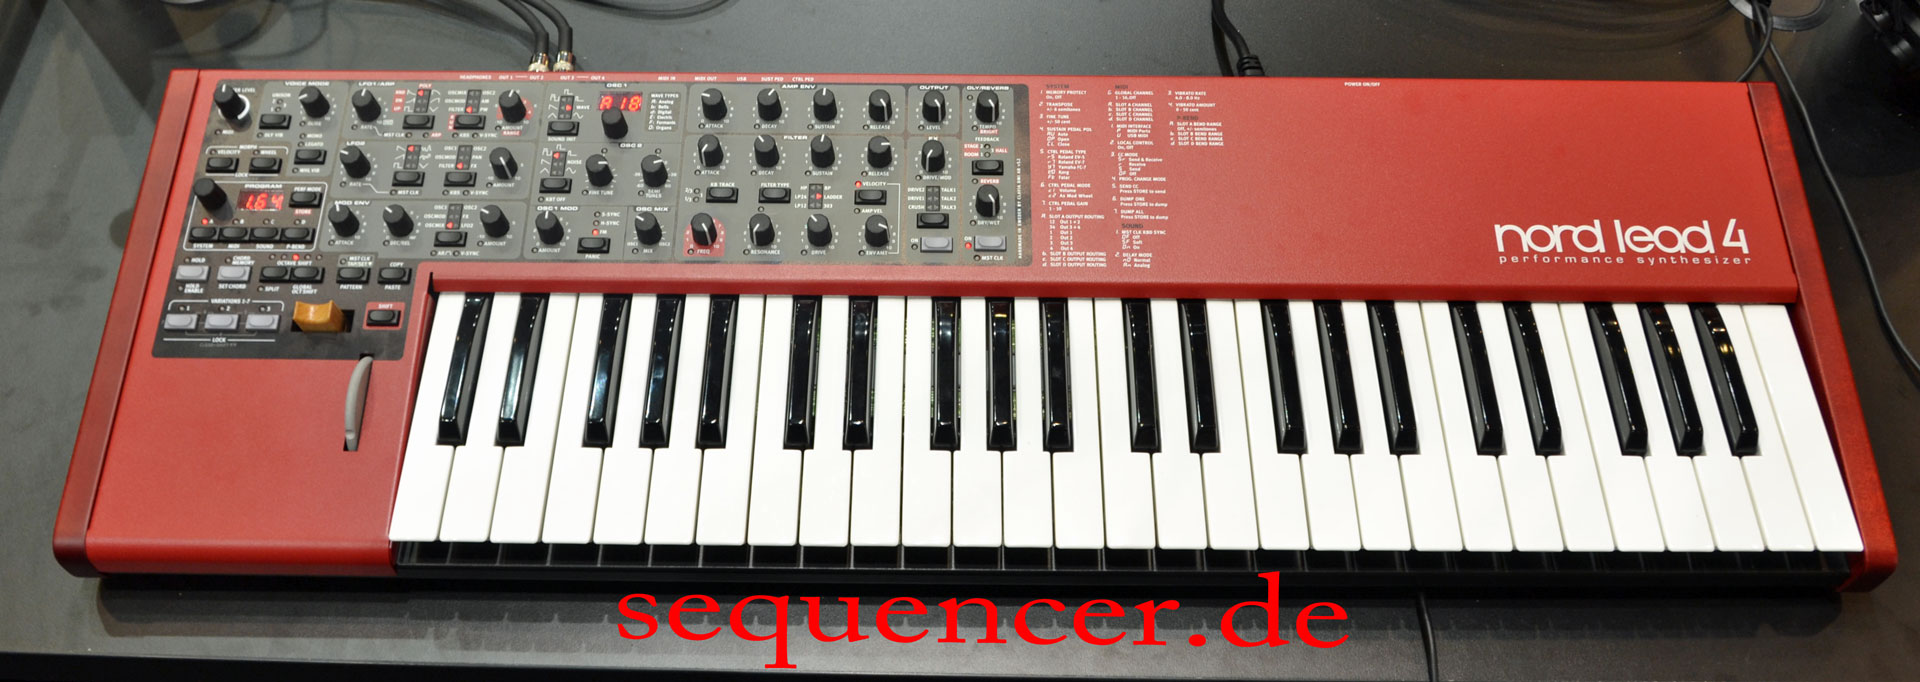 clavia nord lead 4 nord rack 4 nord lead 4r digital synthesizer. Black Bedroom Furniture Sets. Home Design Ideas